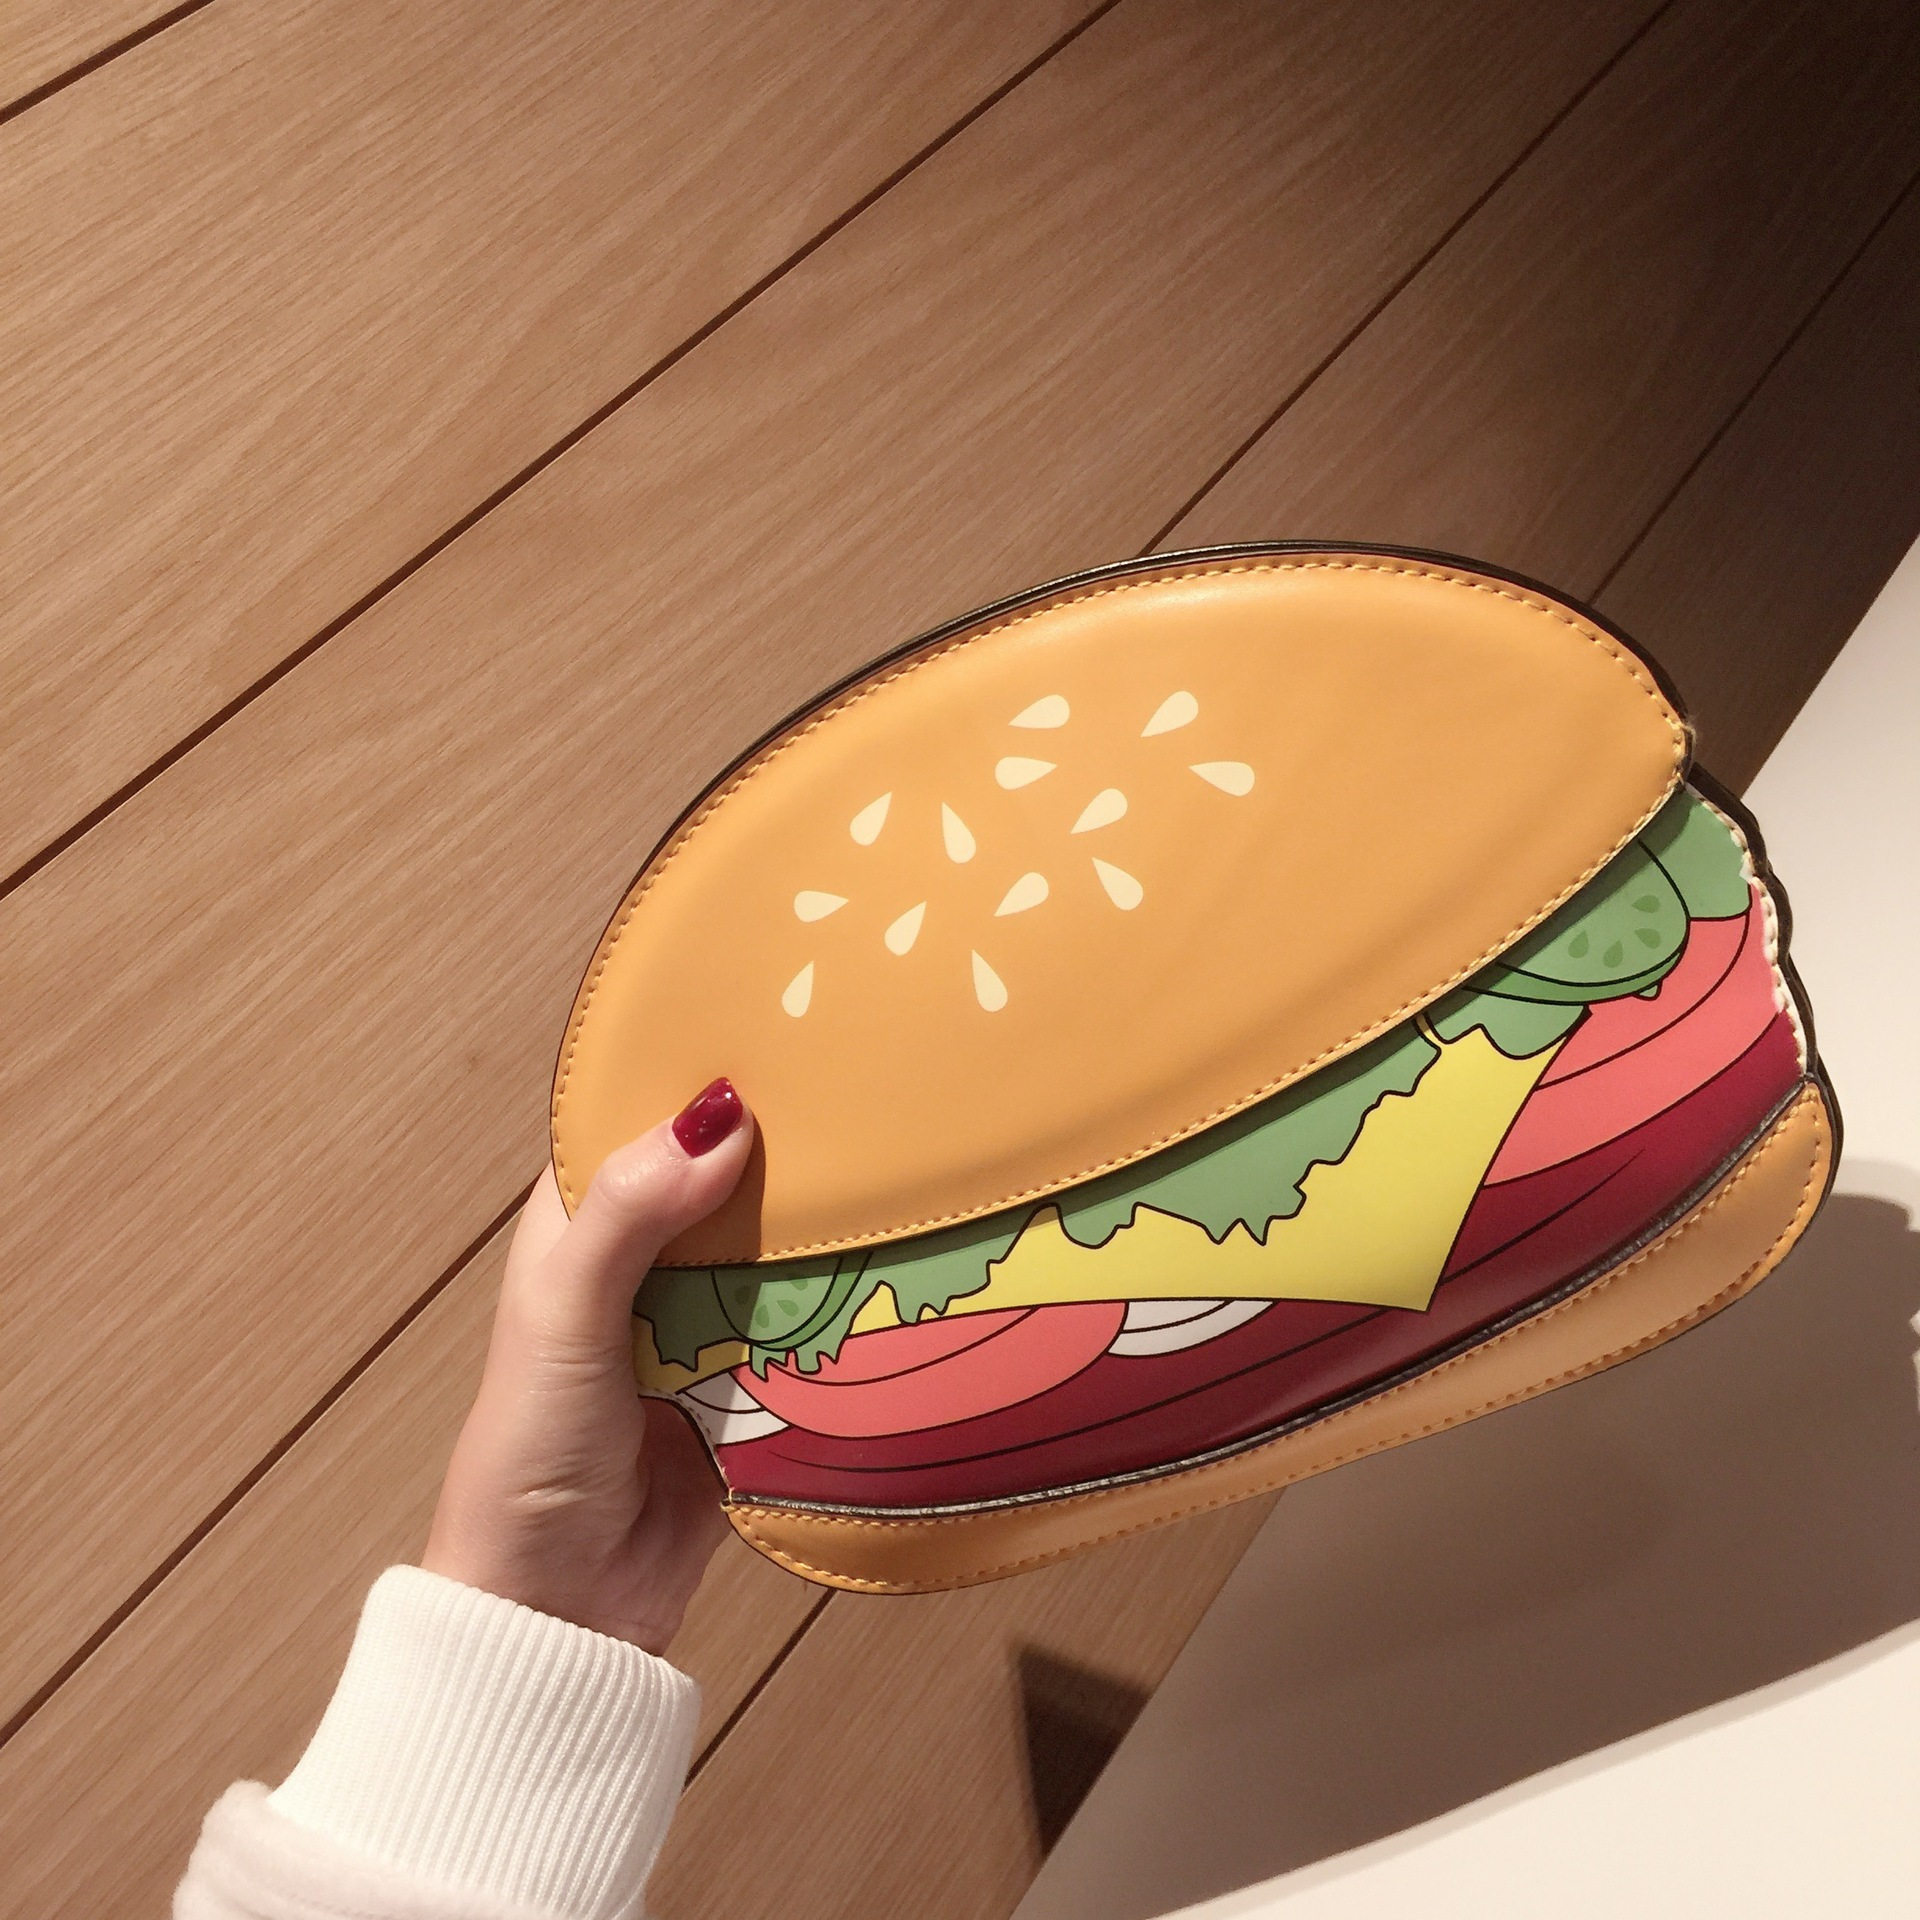 3D Cute Cartoon Women Shoulder Handbag Hamburger Ice cream Cake Bags Small Chain Clutch Crossbody Girls Messenger Bag Watermelon cartoon women ice cream cupcake mini bags casual pu leather small chain clutch crossbody girl shoulder messenger bag bolsa